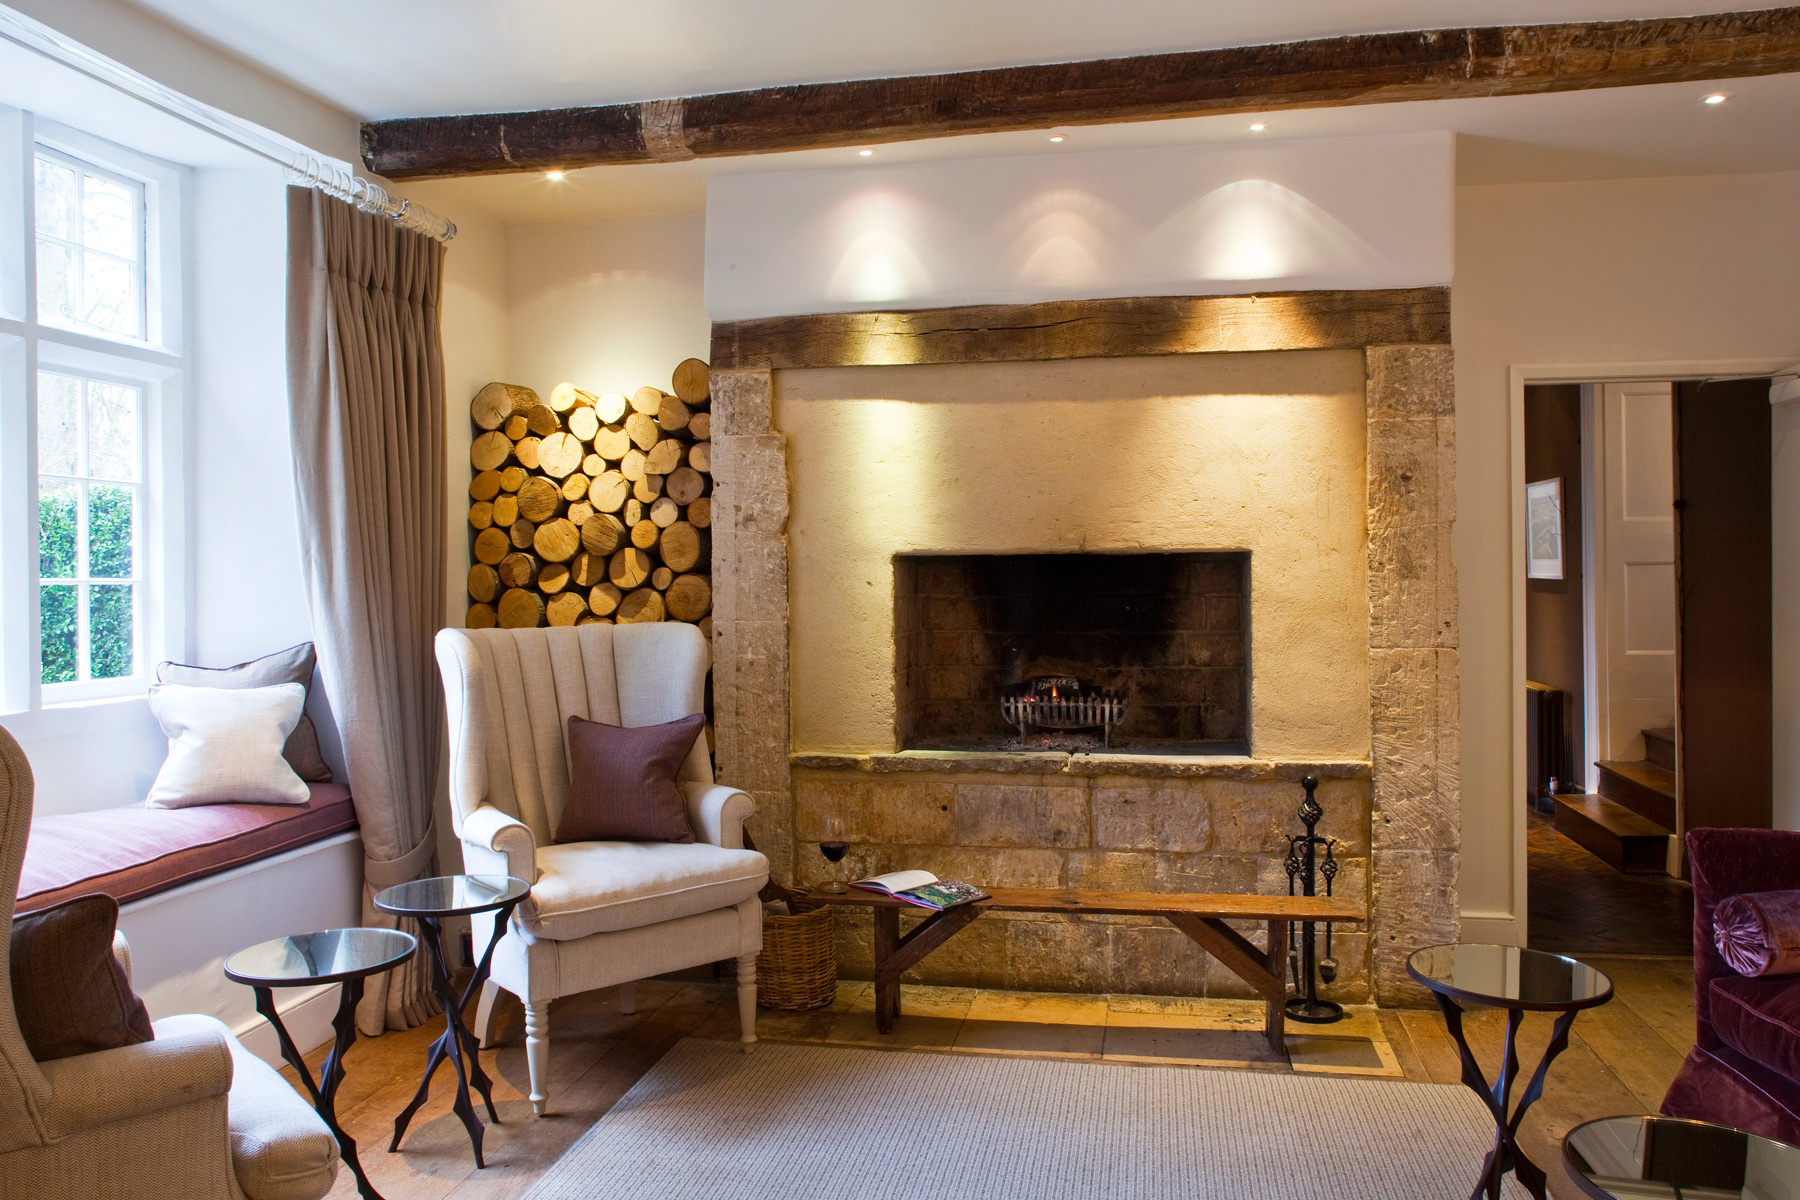 Barnsley House Hotel - A Destination Encapsulating The Beauty Of The Cotswolds 4